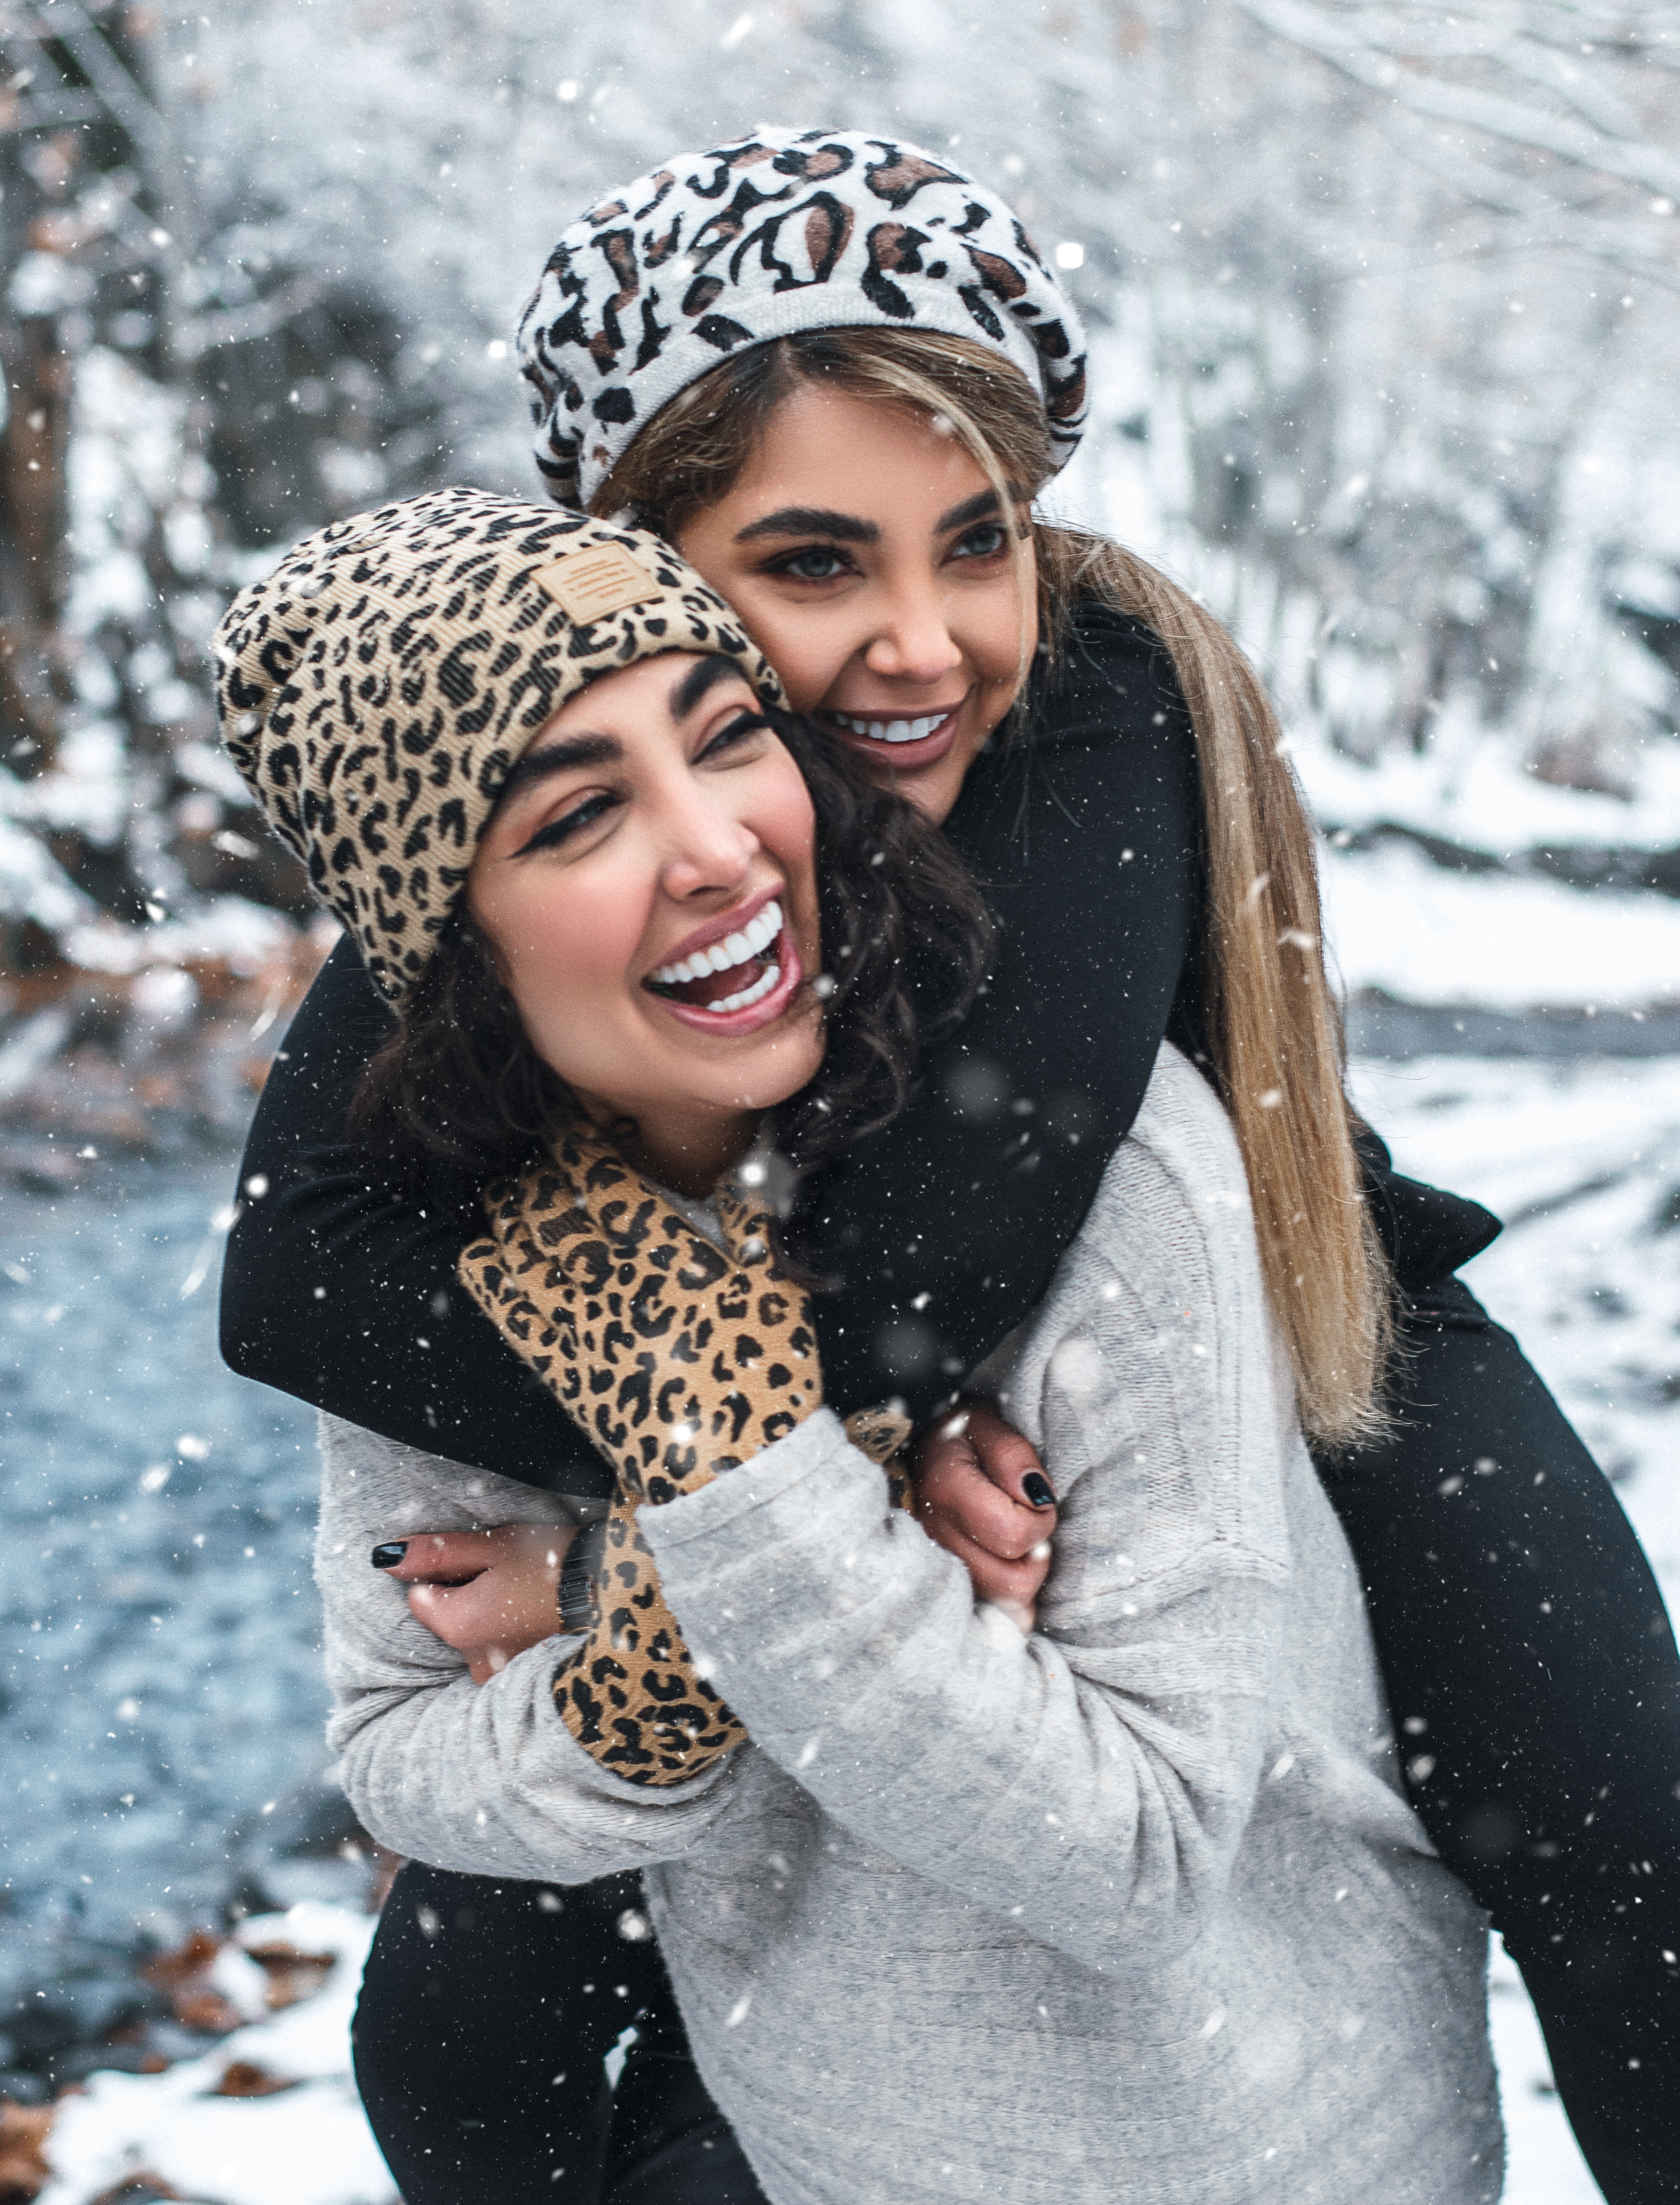 laughing woman carrying girlfriend on back in winter forest